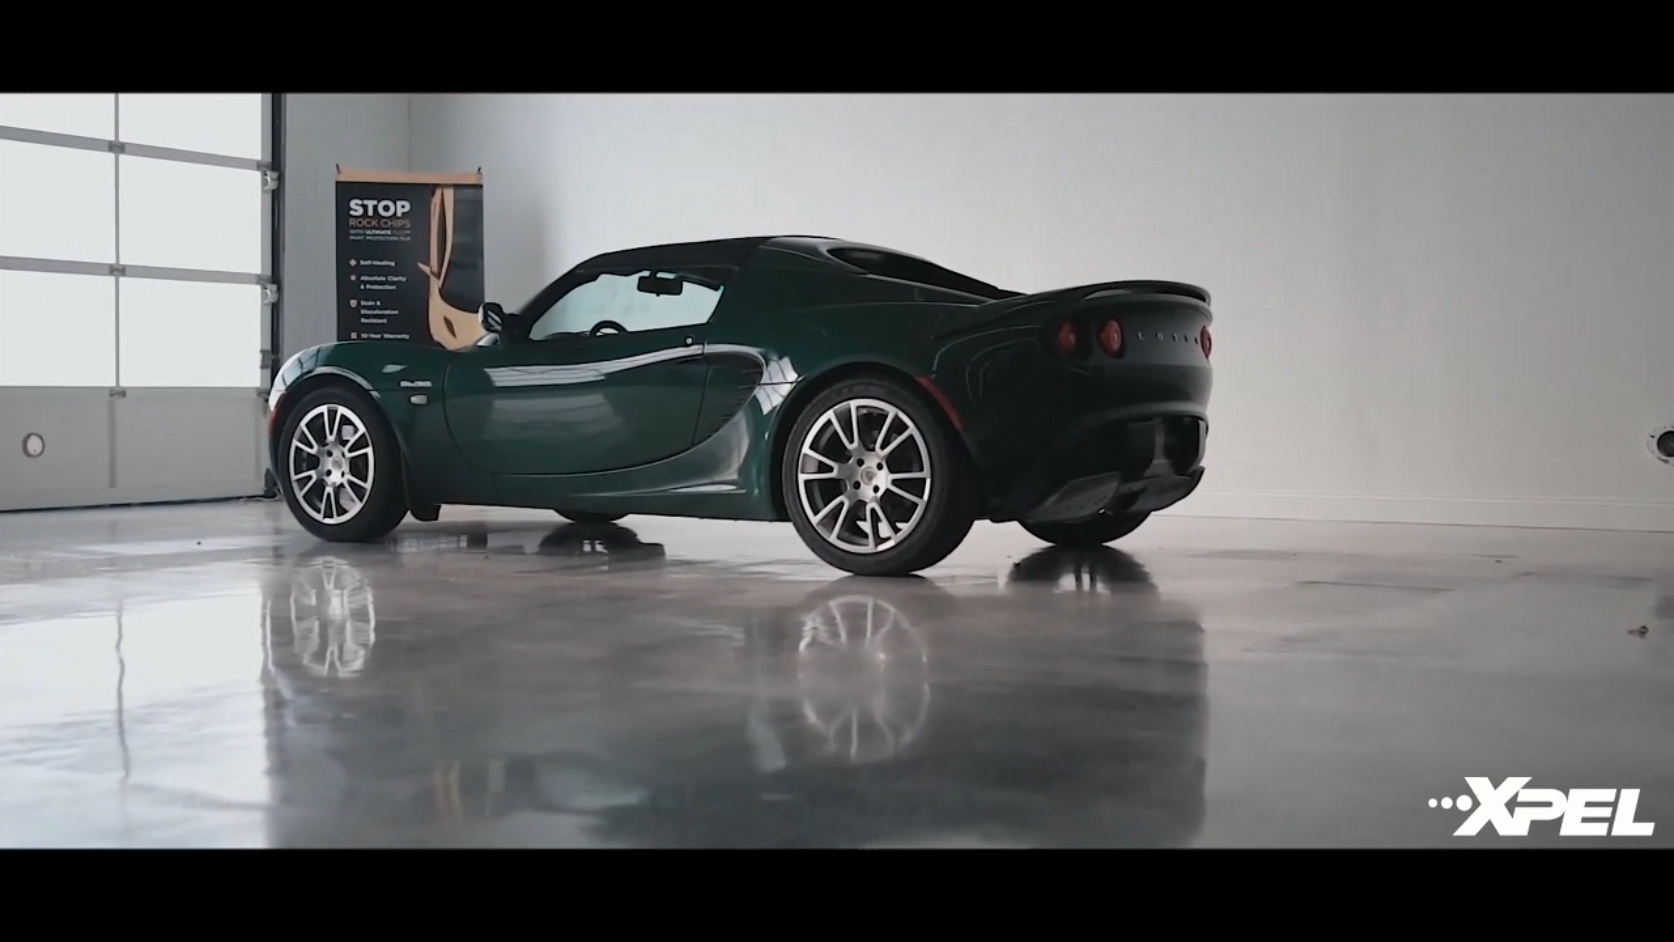 【海外案例】弗吉尼亚州 Simple Details-Elite Automotive Care店  Lotus Elise施工案例